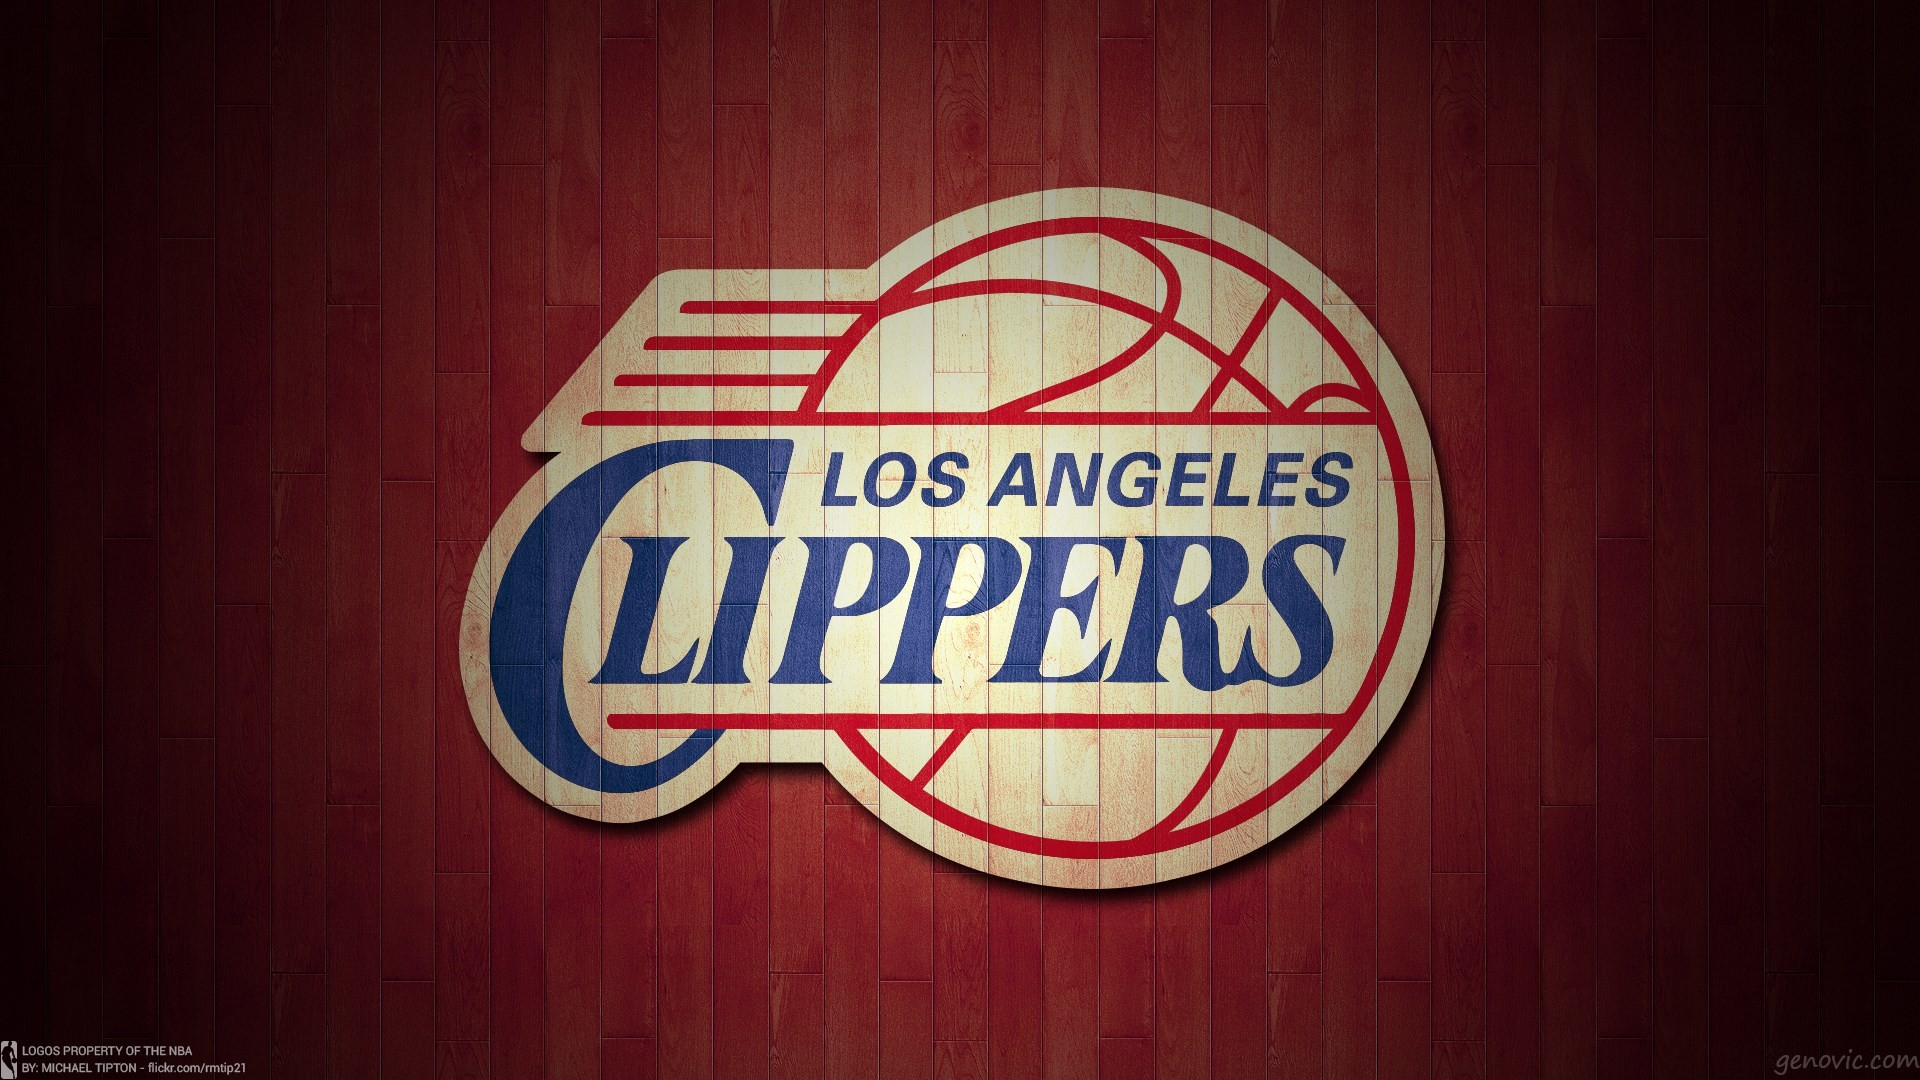 Res: 1920x1080, LOS ANGELES CLIPPERS Basketball Nba logo wallpaper Wallpapers HD / Desktop  and Mobile Backgrounds